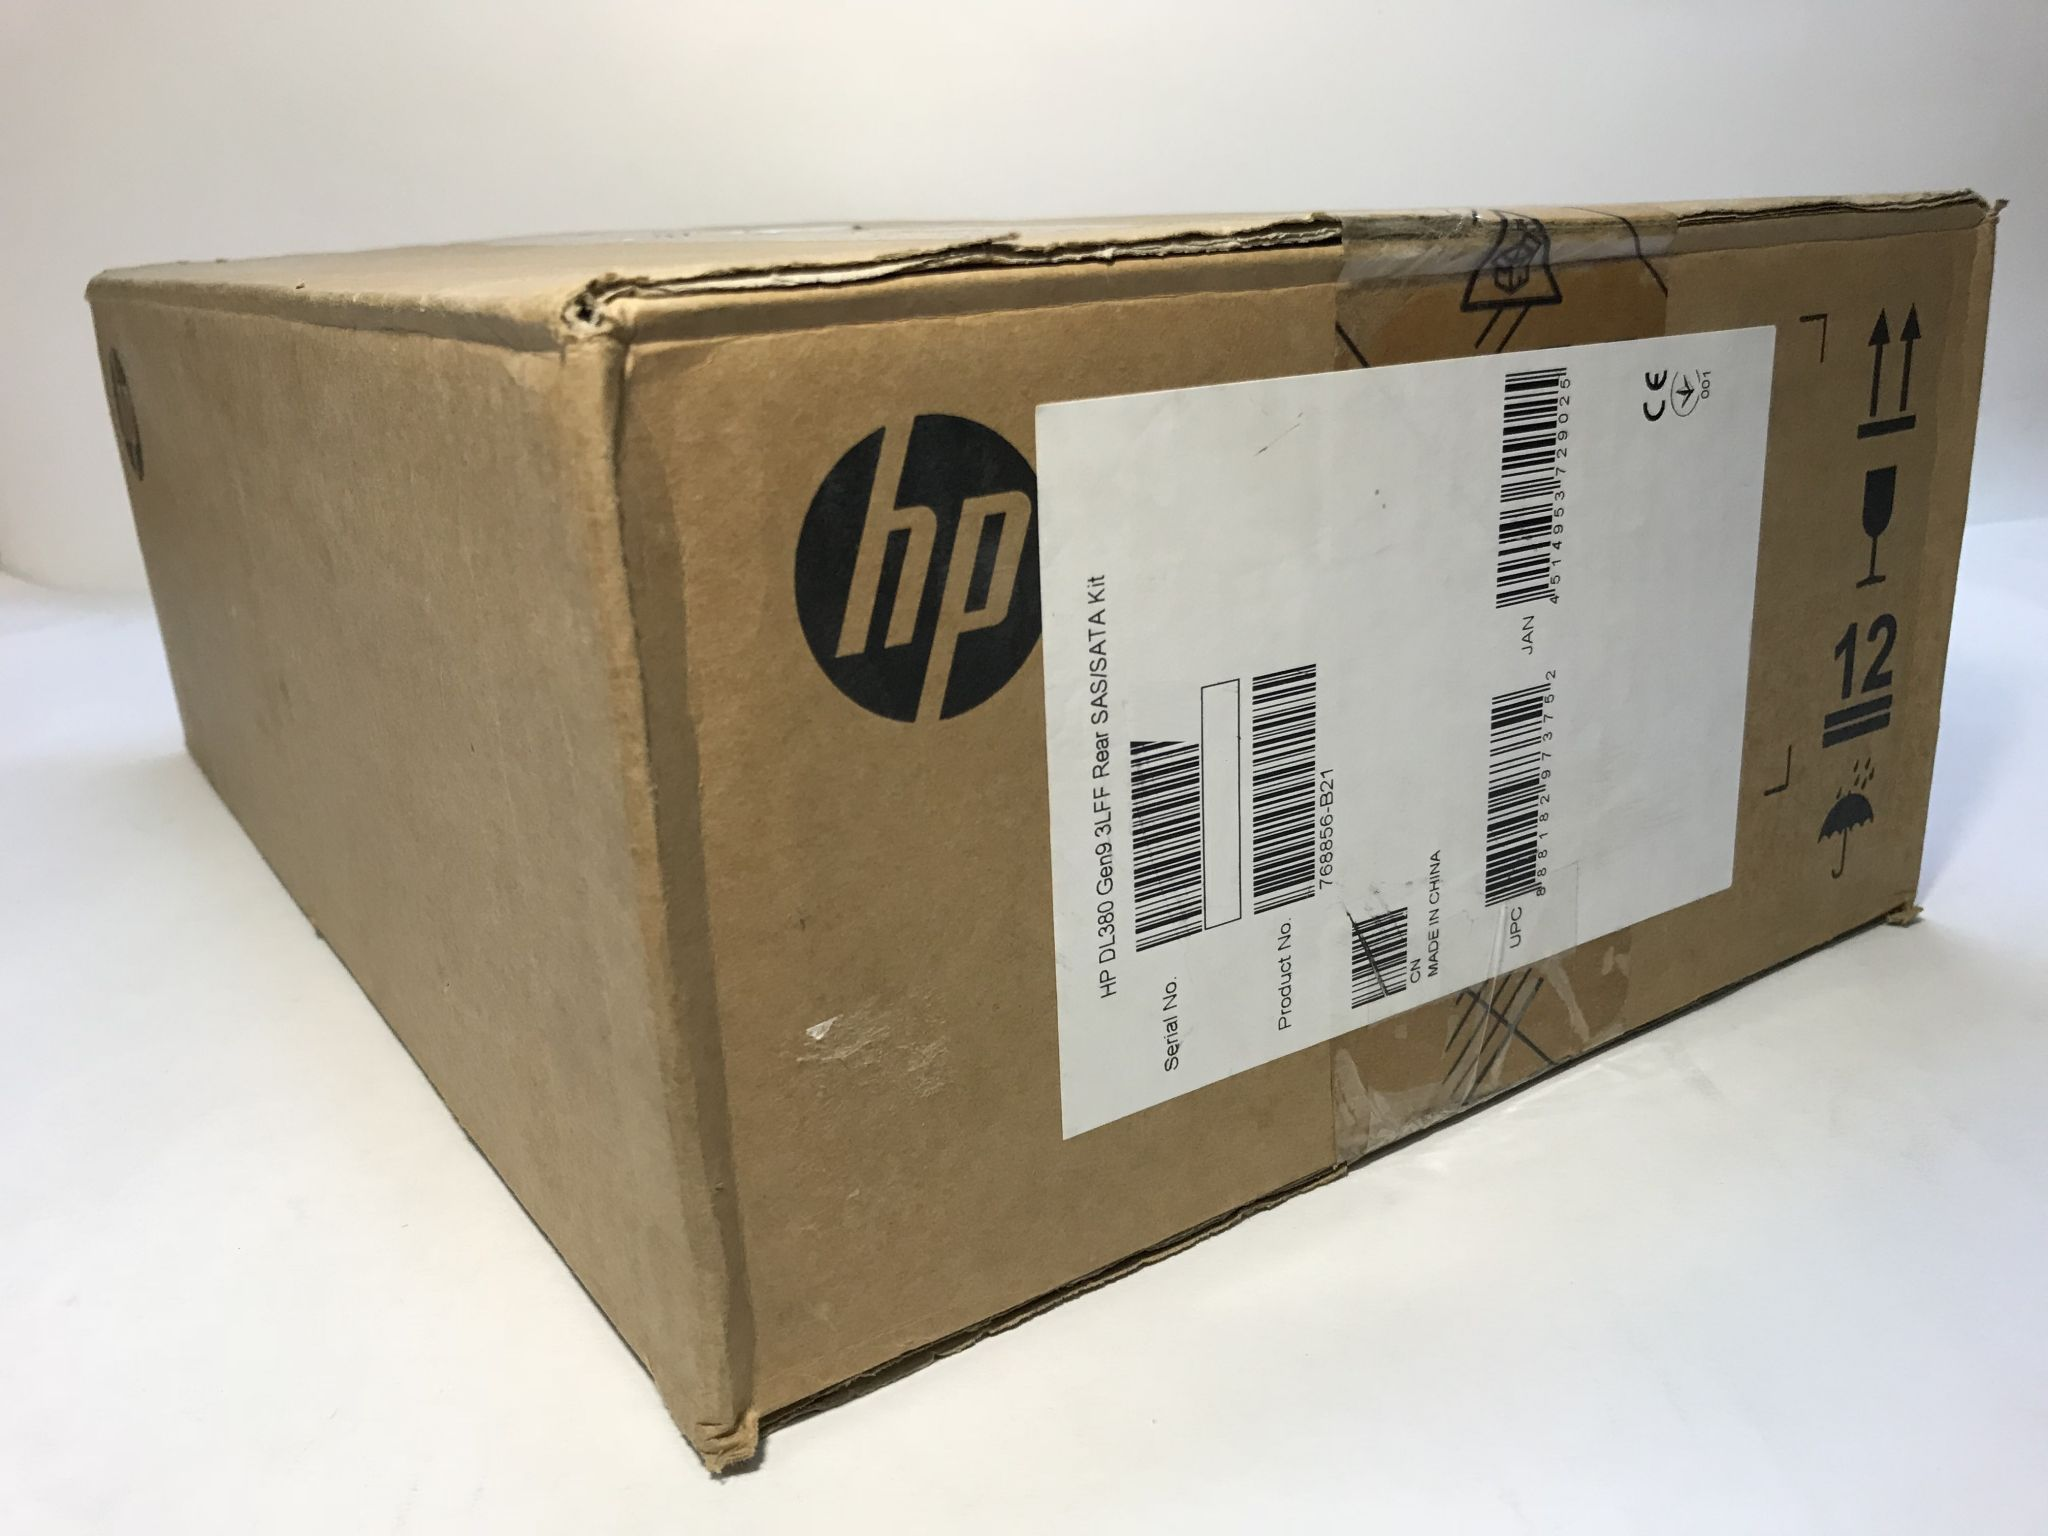 Опция HPE DL380 Gen9 3LFF Rear SAS/SATA Kit